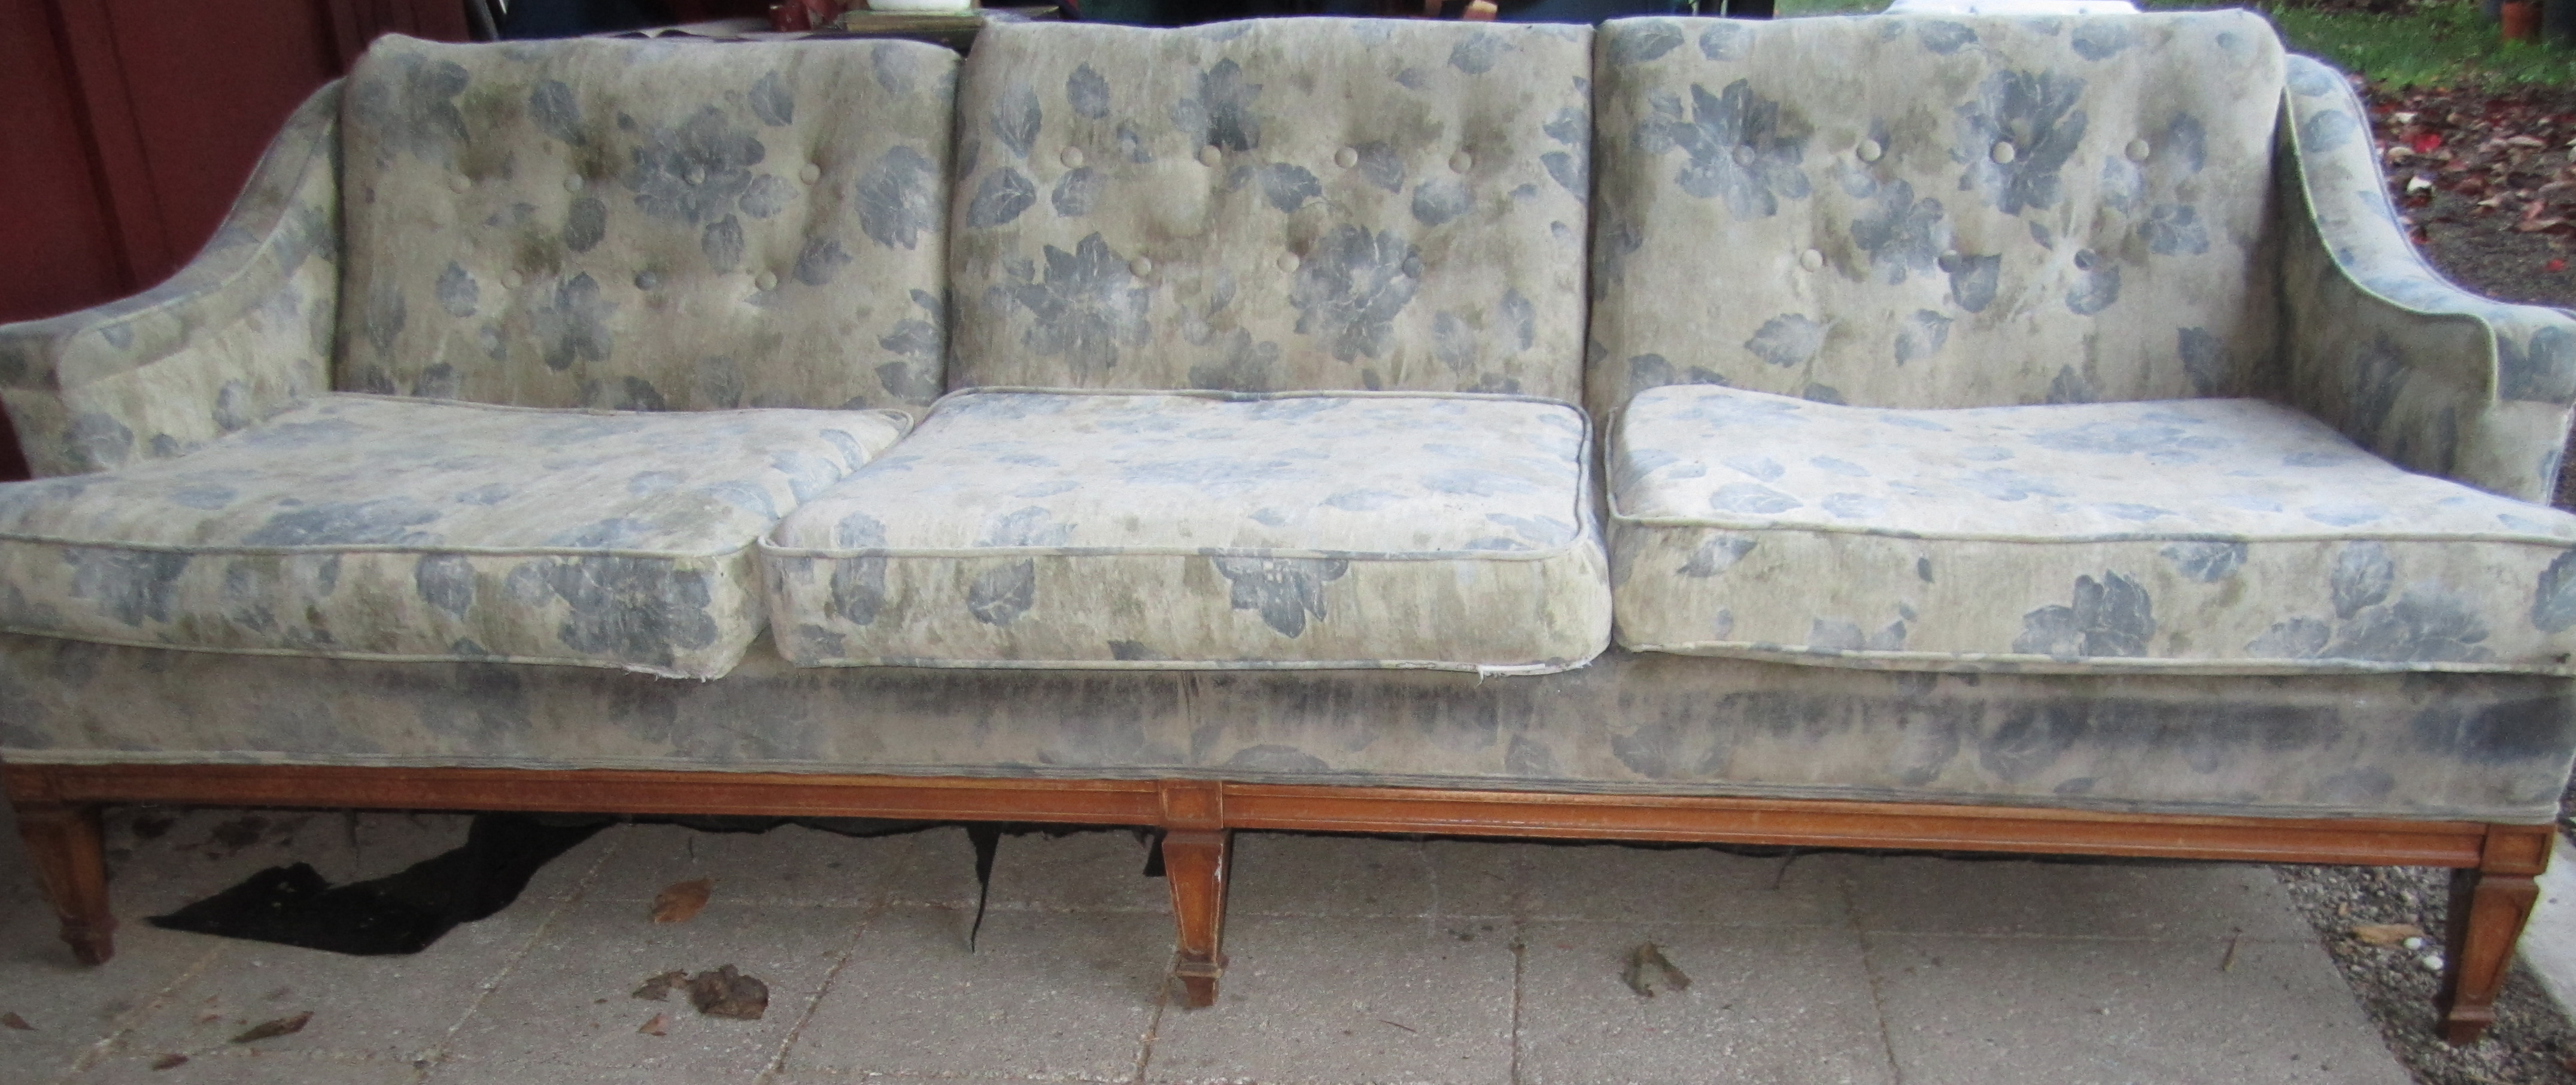 Blue flowered couch